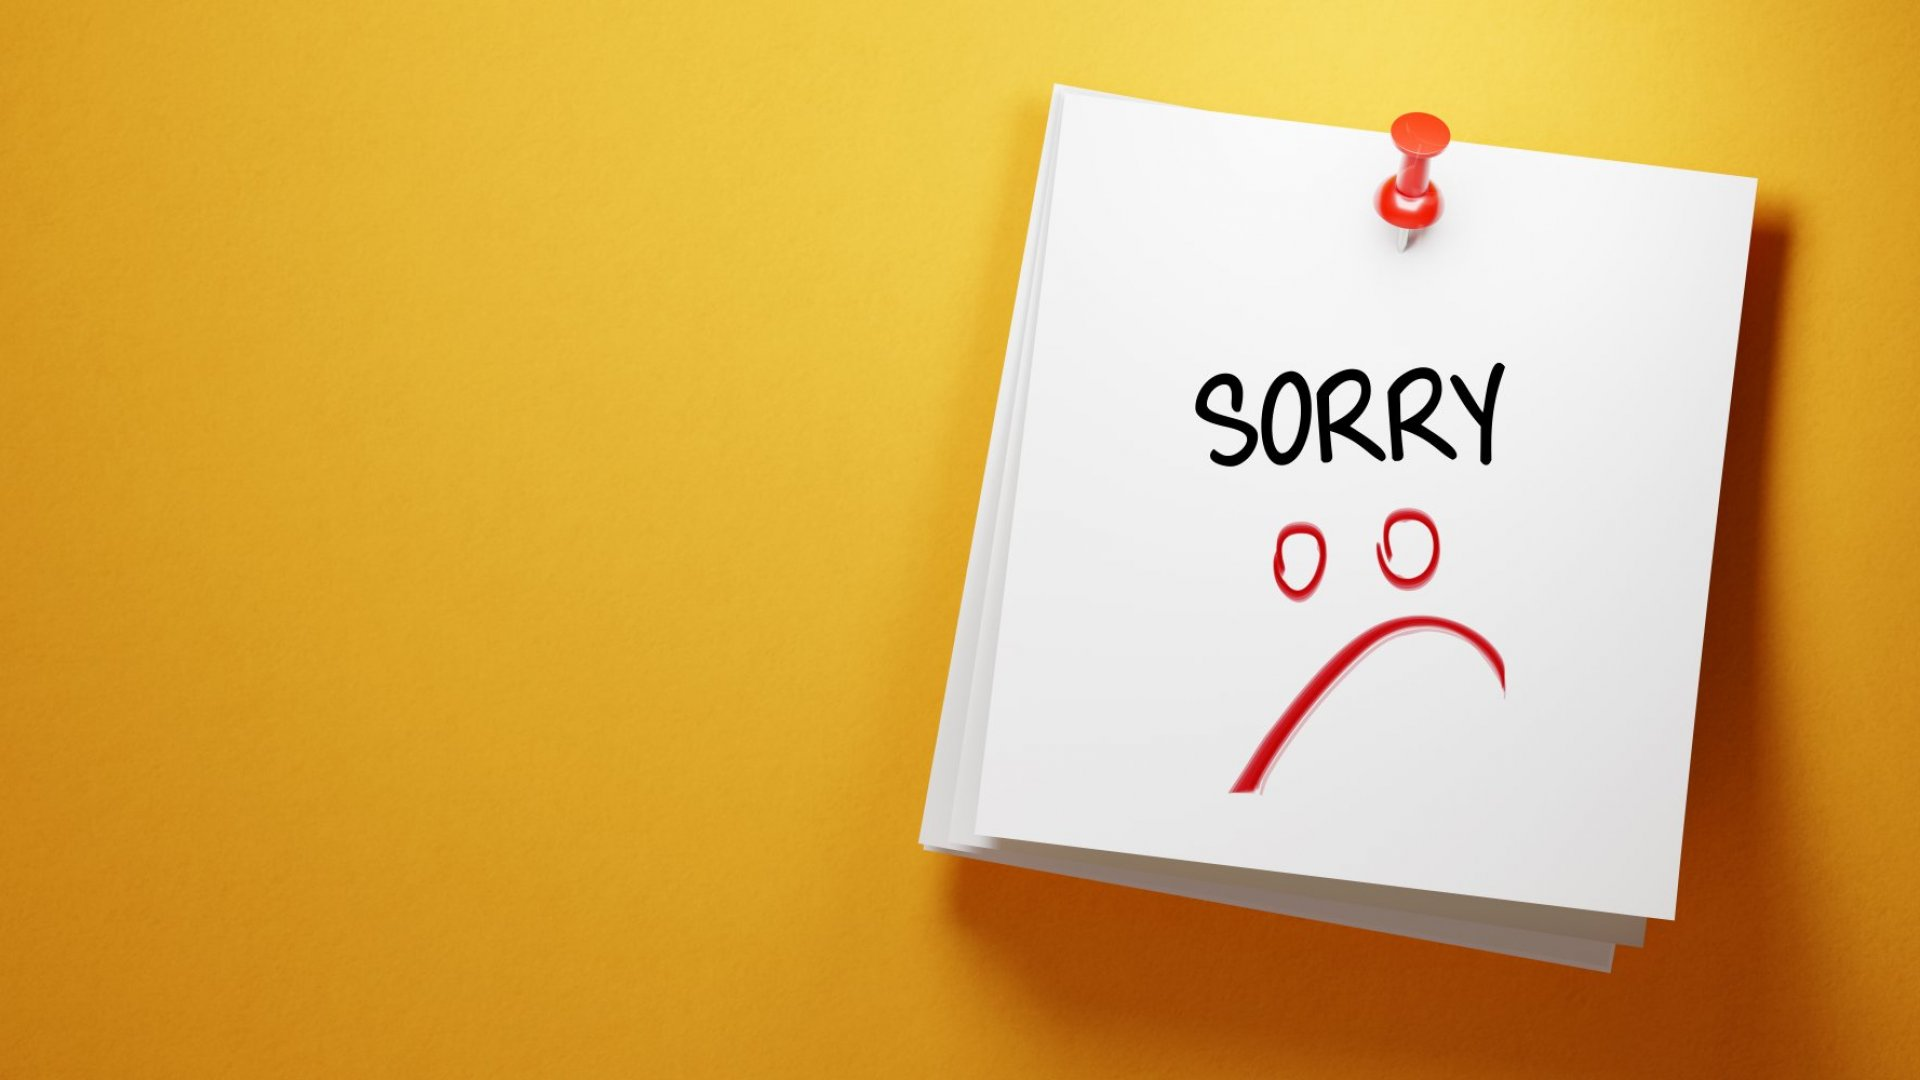 This Is the 1 Phrase You Should Never Use With a Customer (or Anyone Really)